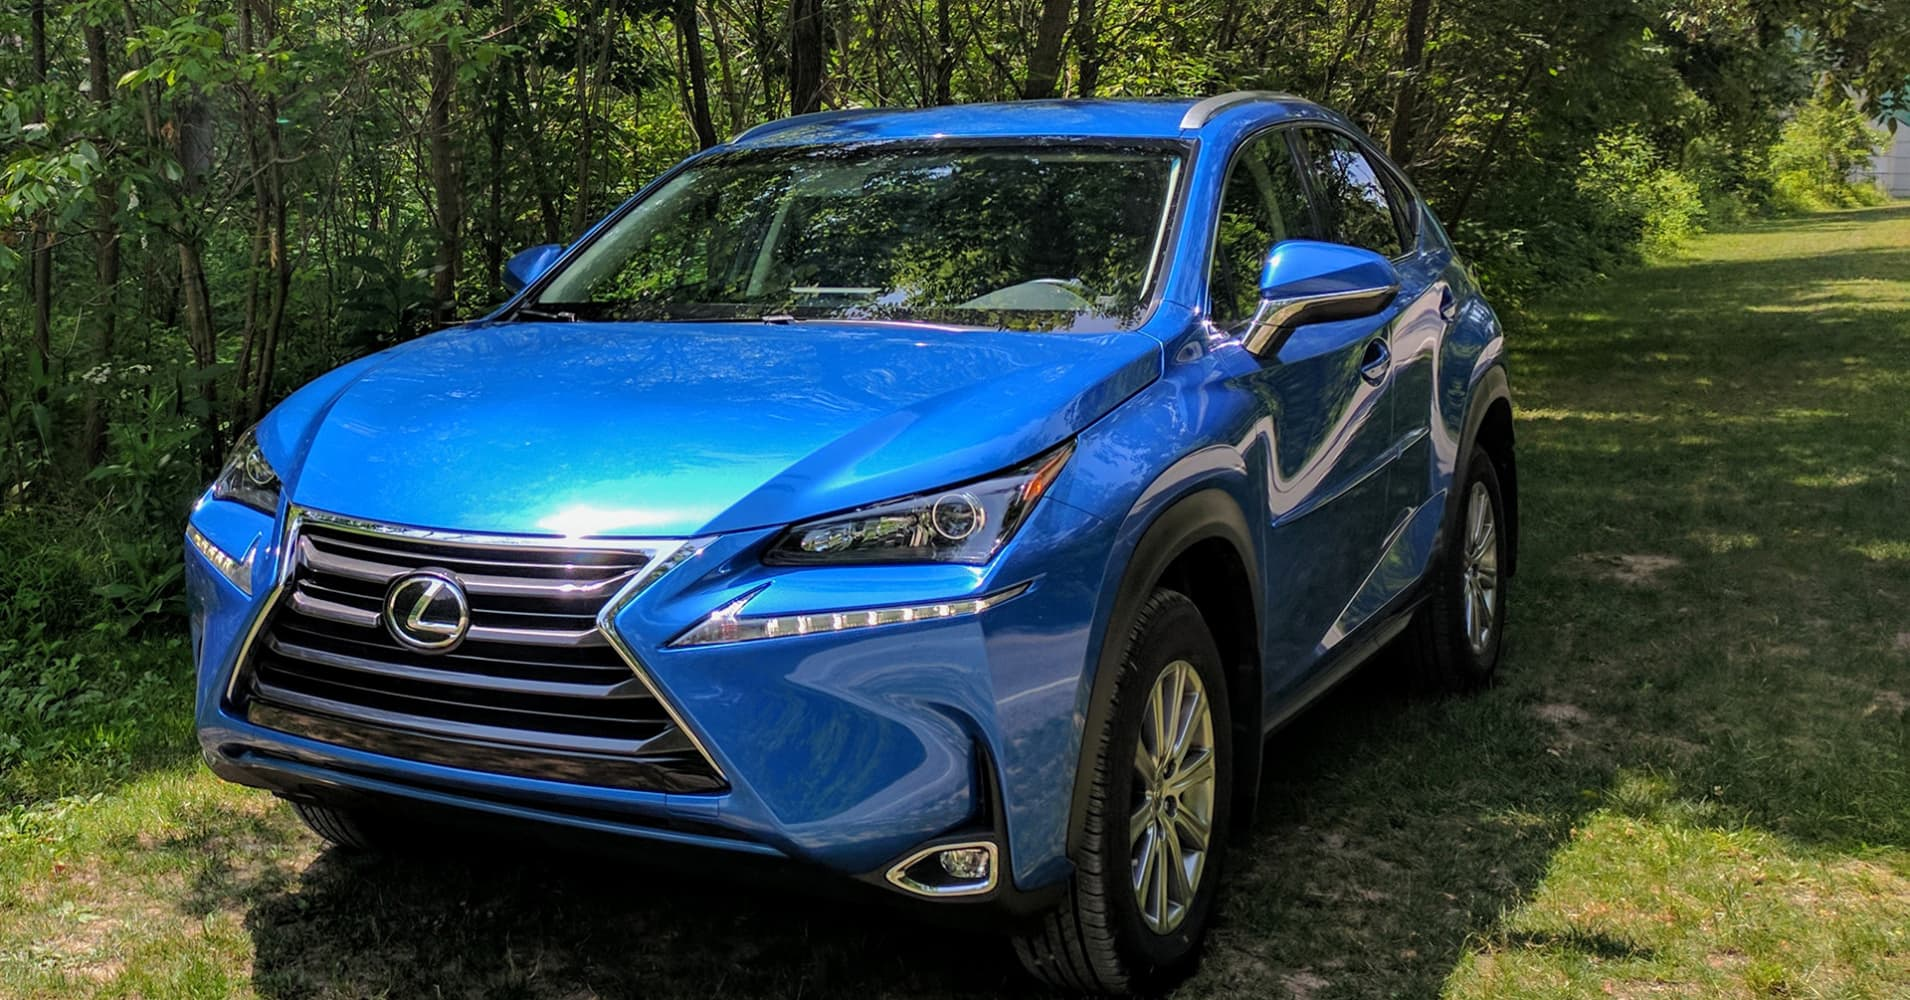 2017 lexus nx200t review best value in subcompact luxury